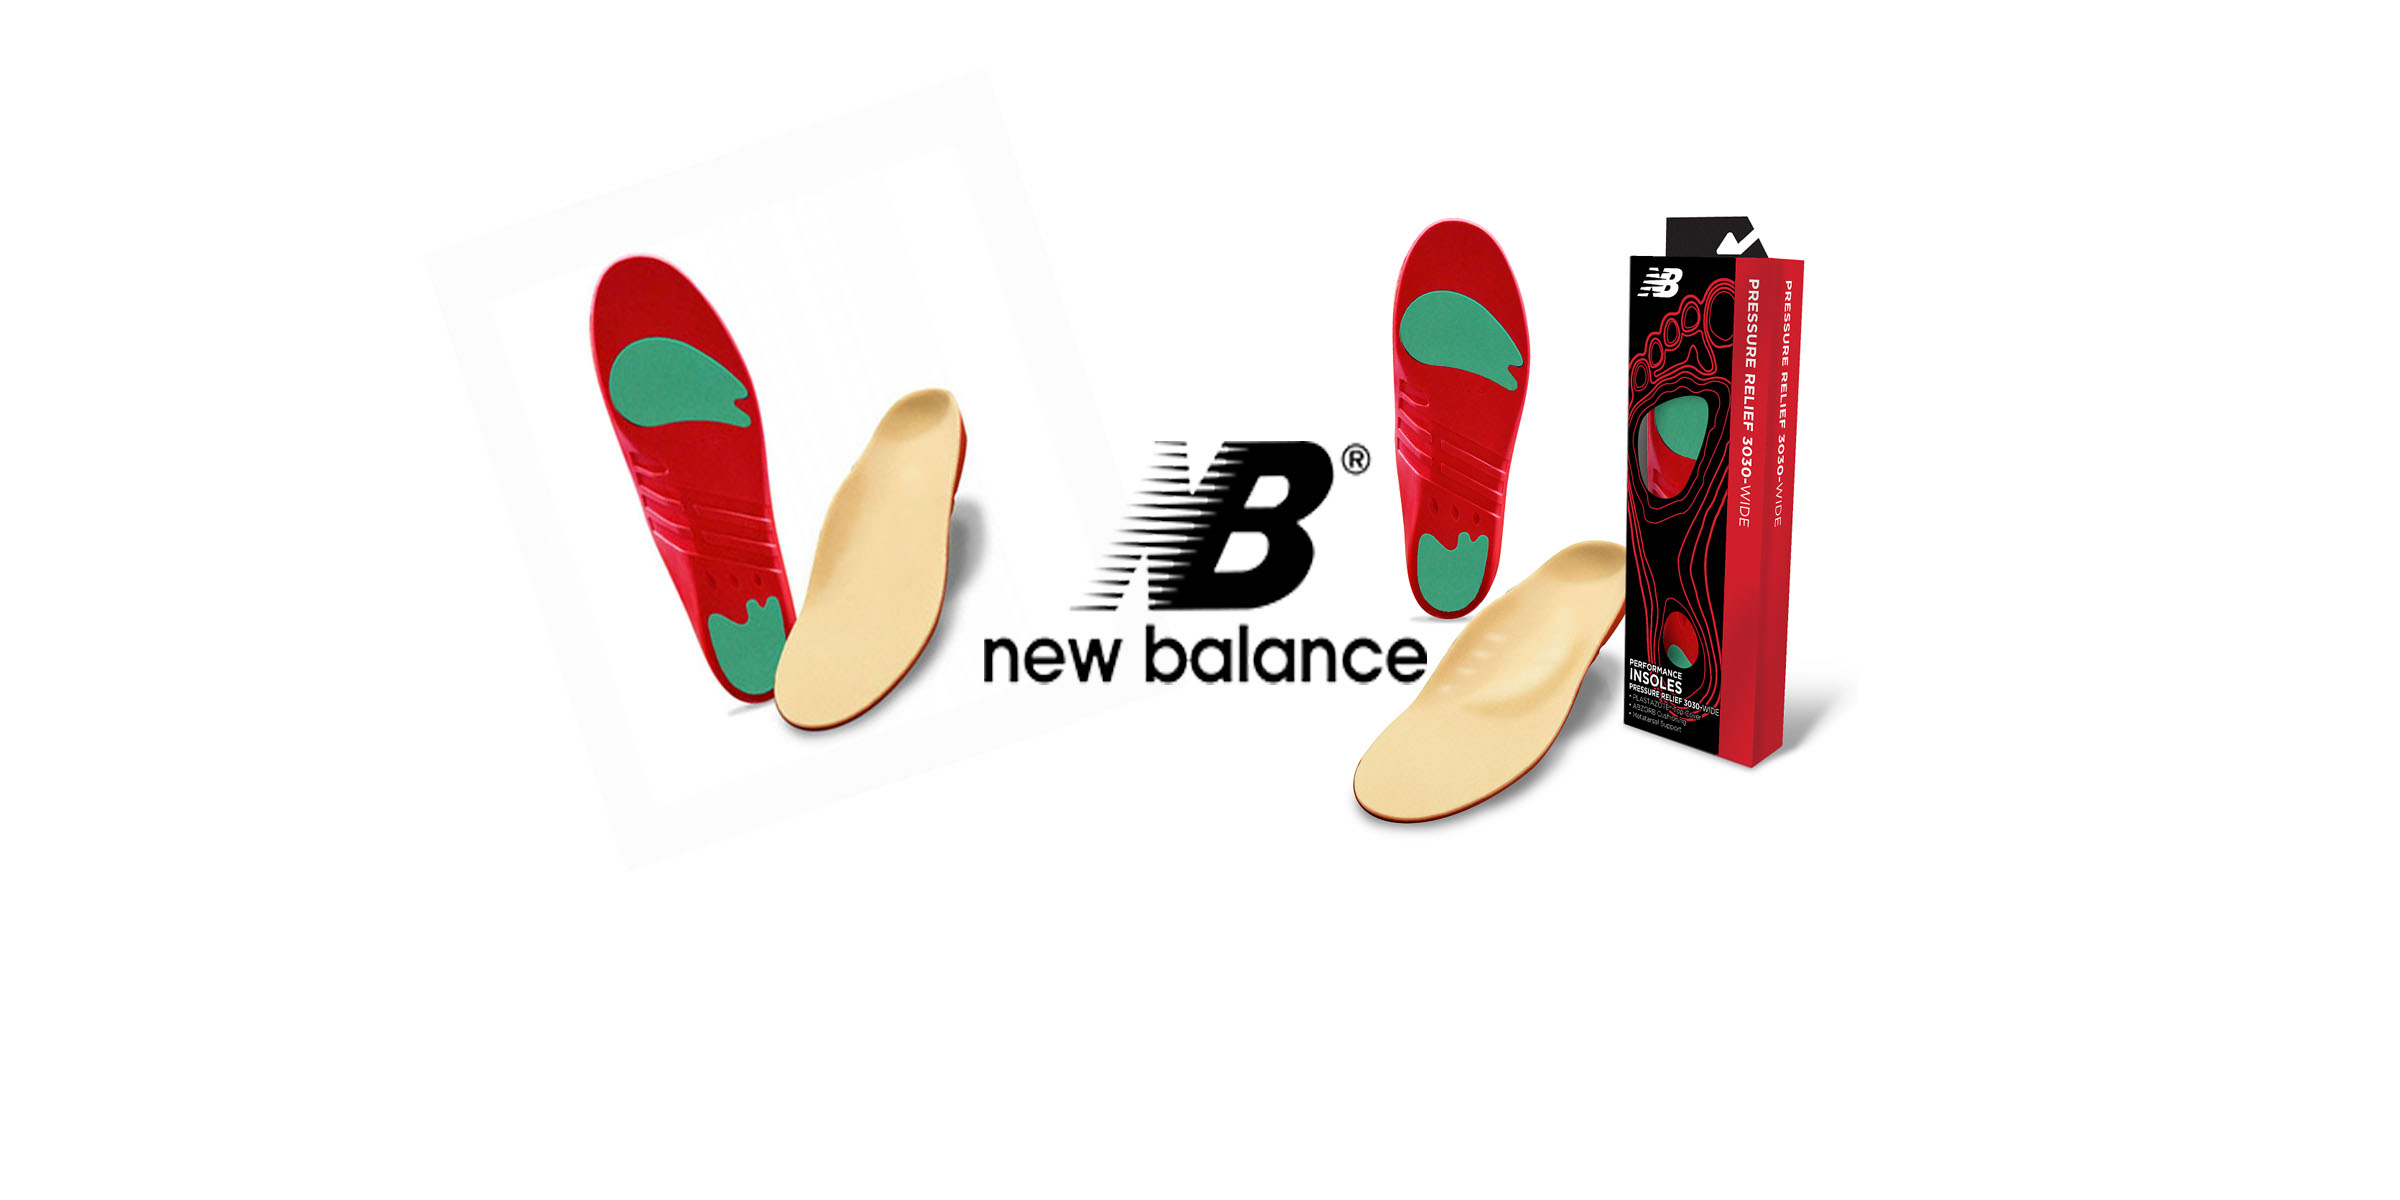 The Difference Between New Balance 3020 and 3030